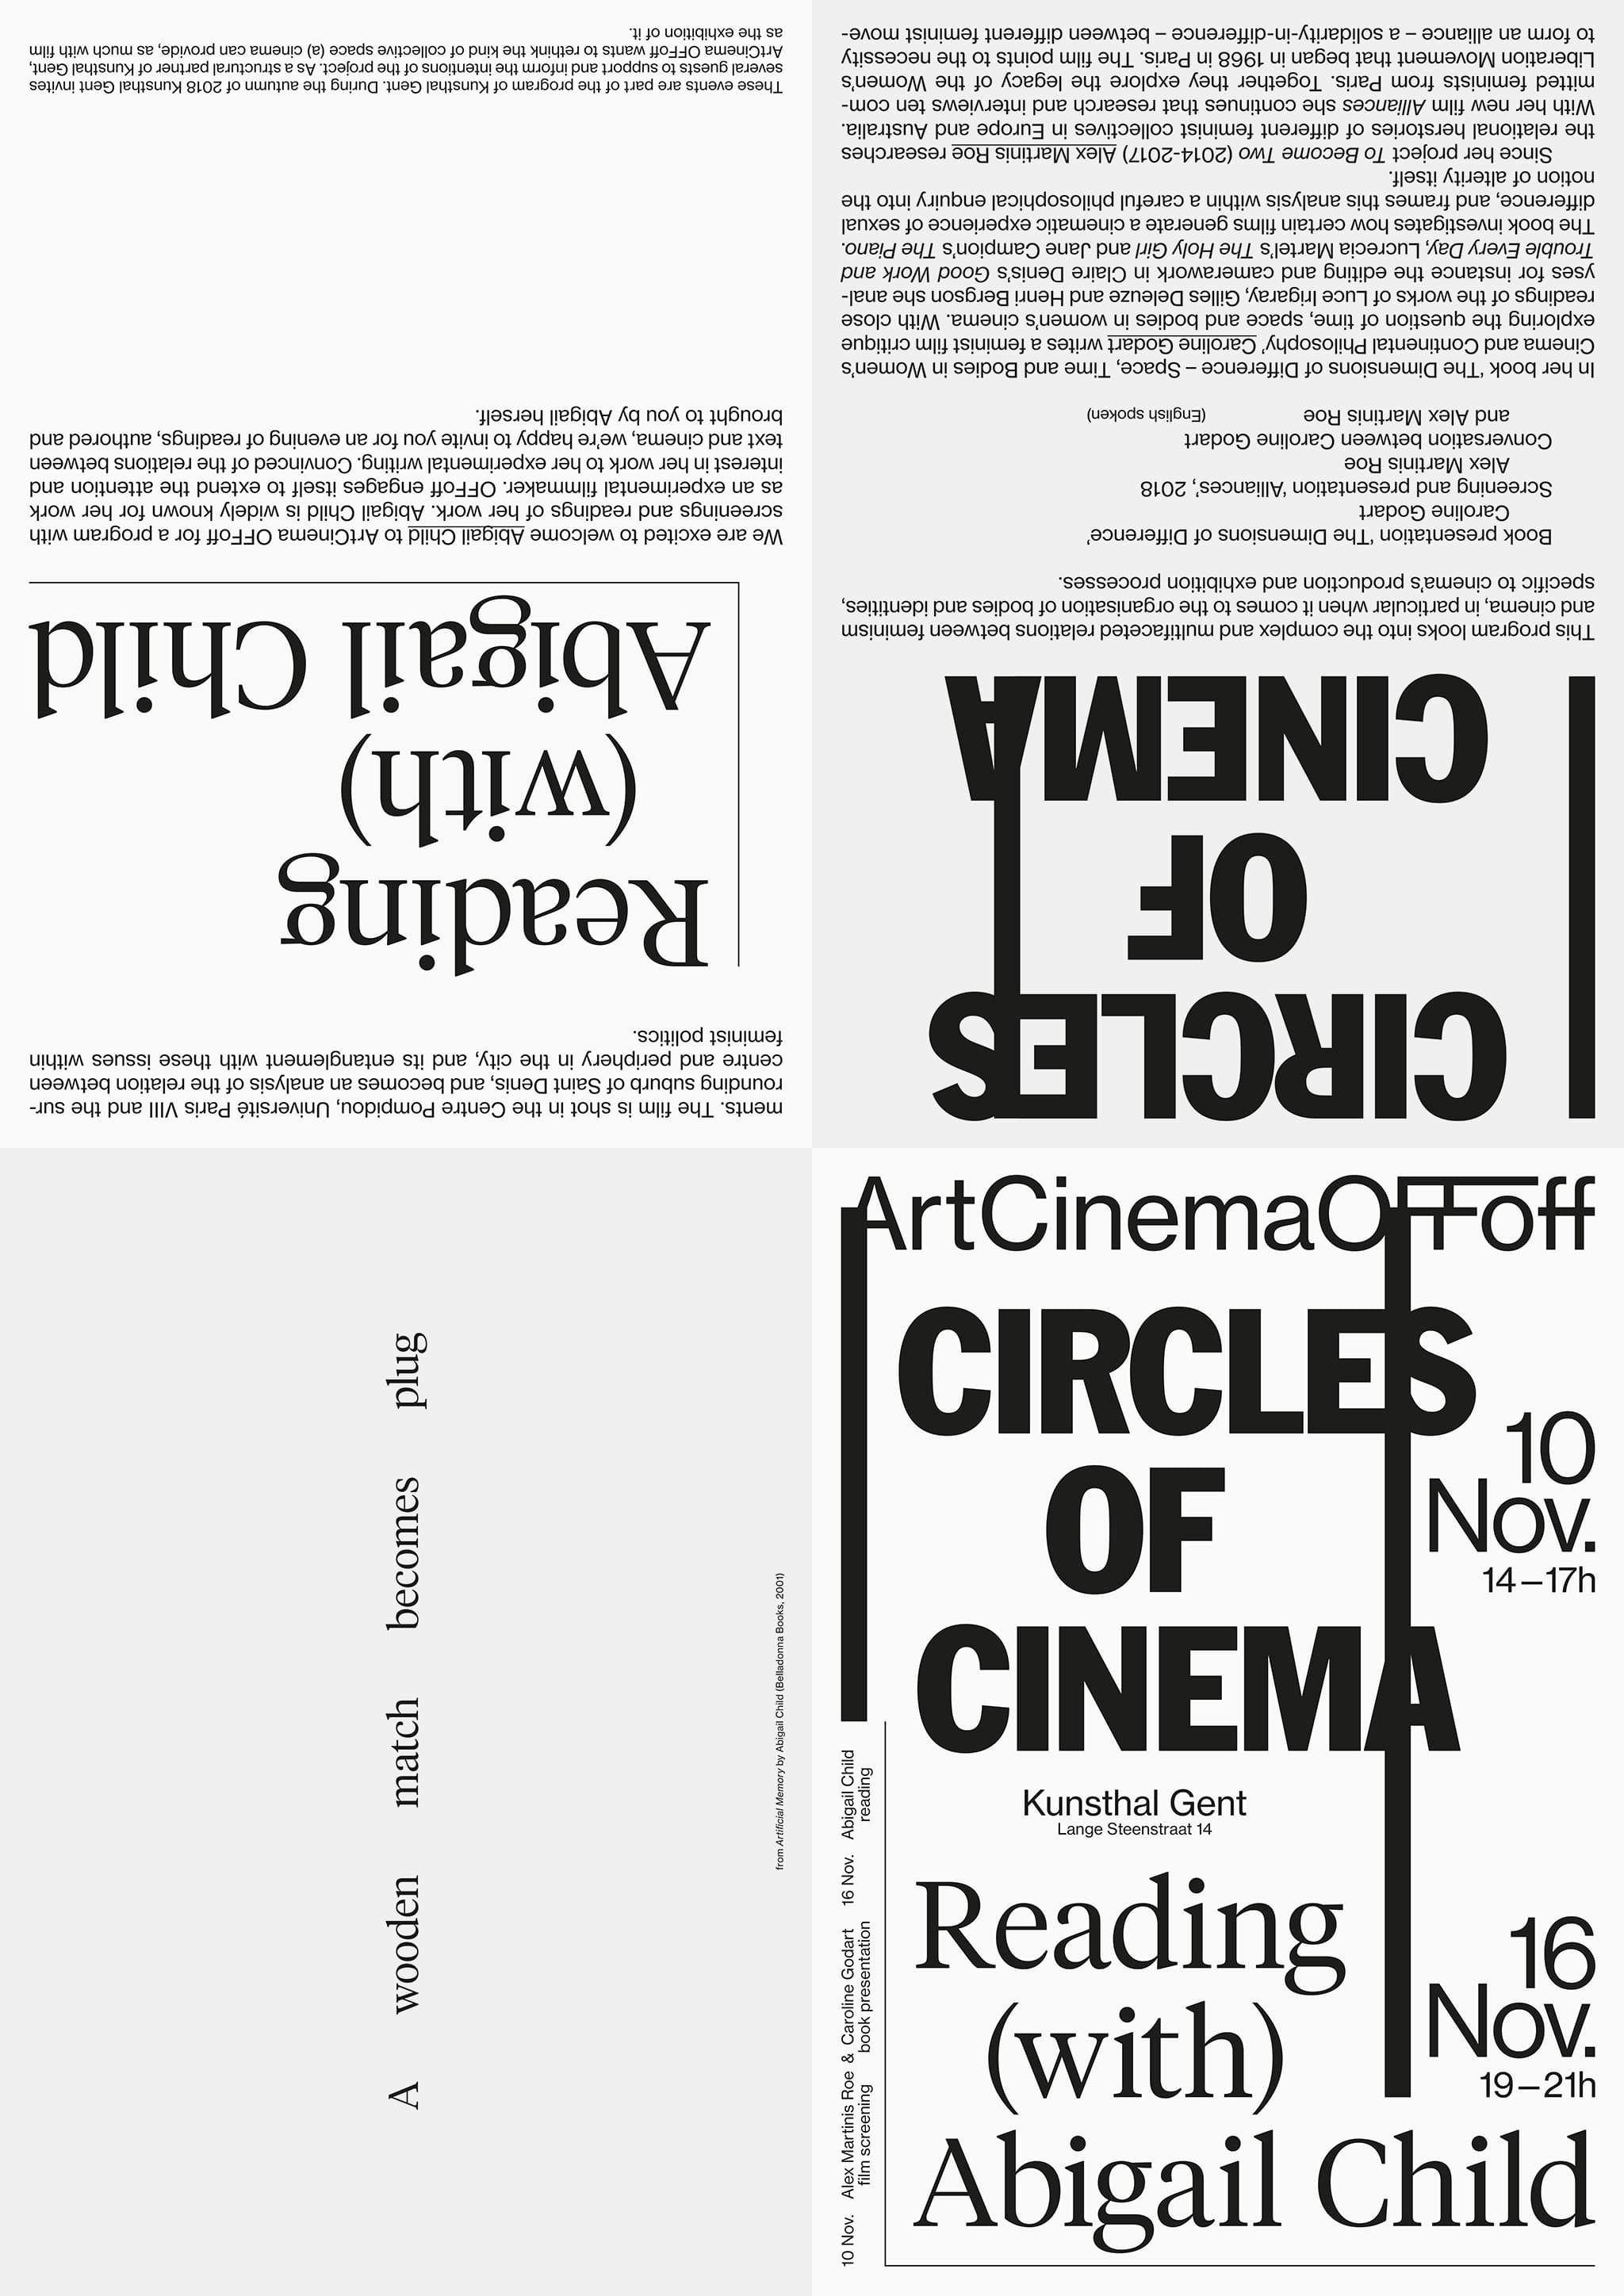 Circles of Cinema / Abigail Child, Art Cinema OFFoff, A2 folding poster